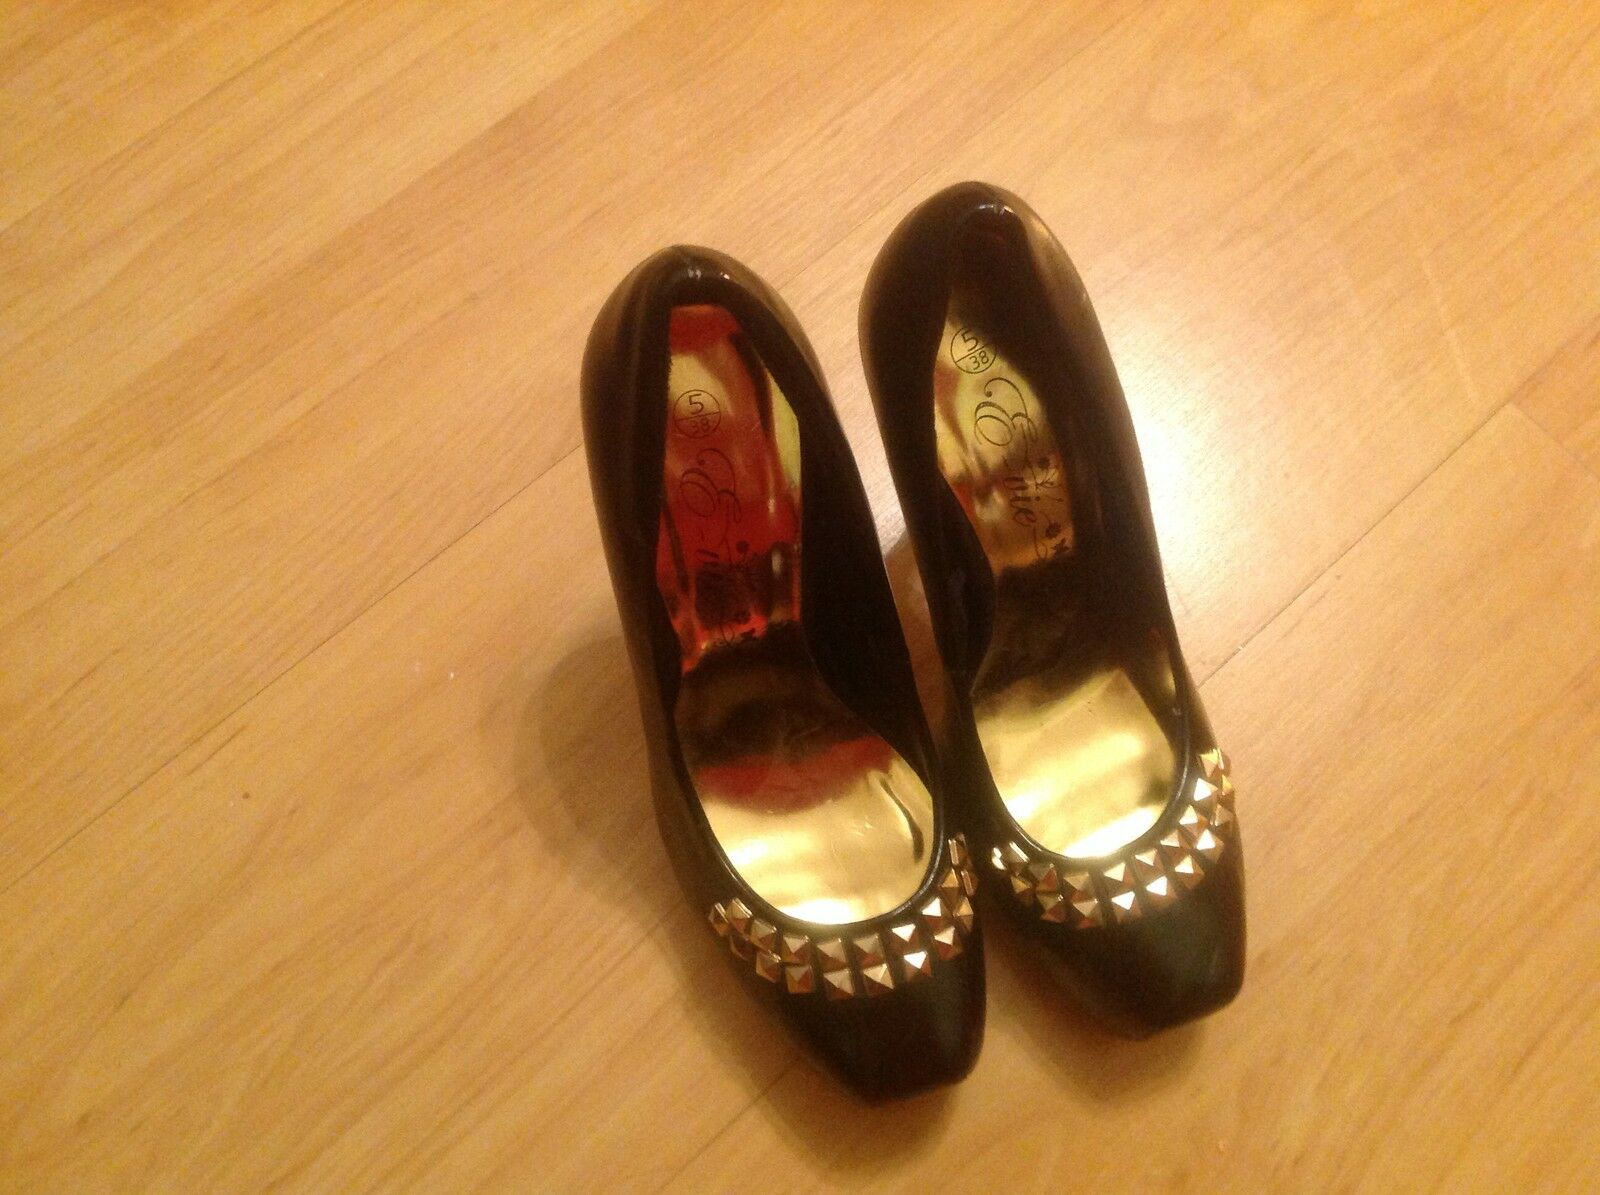 LOVELY PAIR LADIES BLACK WITH GOLD EMBELLISHMENT STILETTO HEEL SHOES SIZE 5